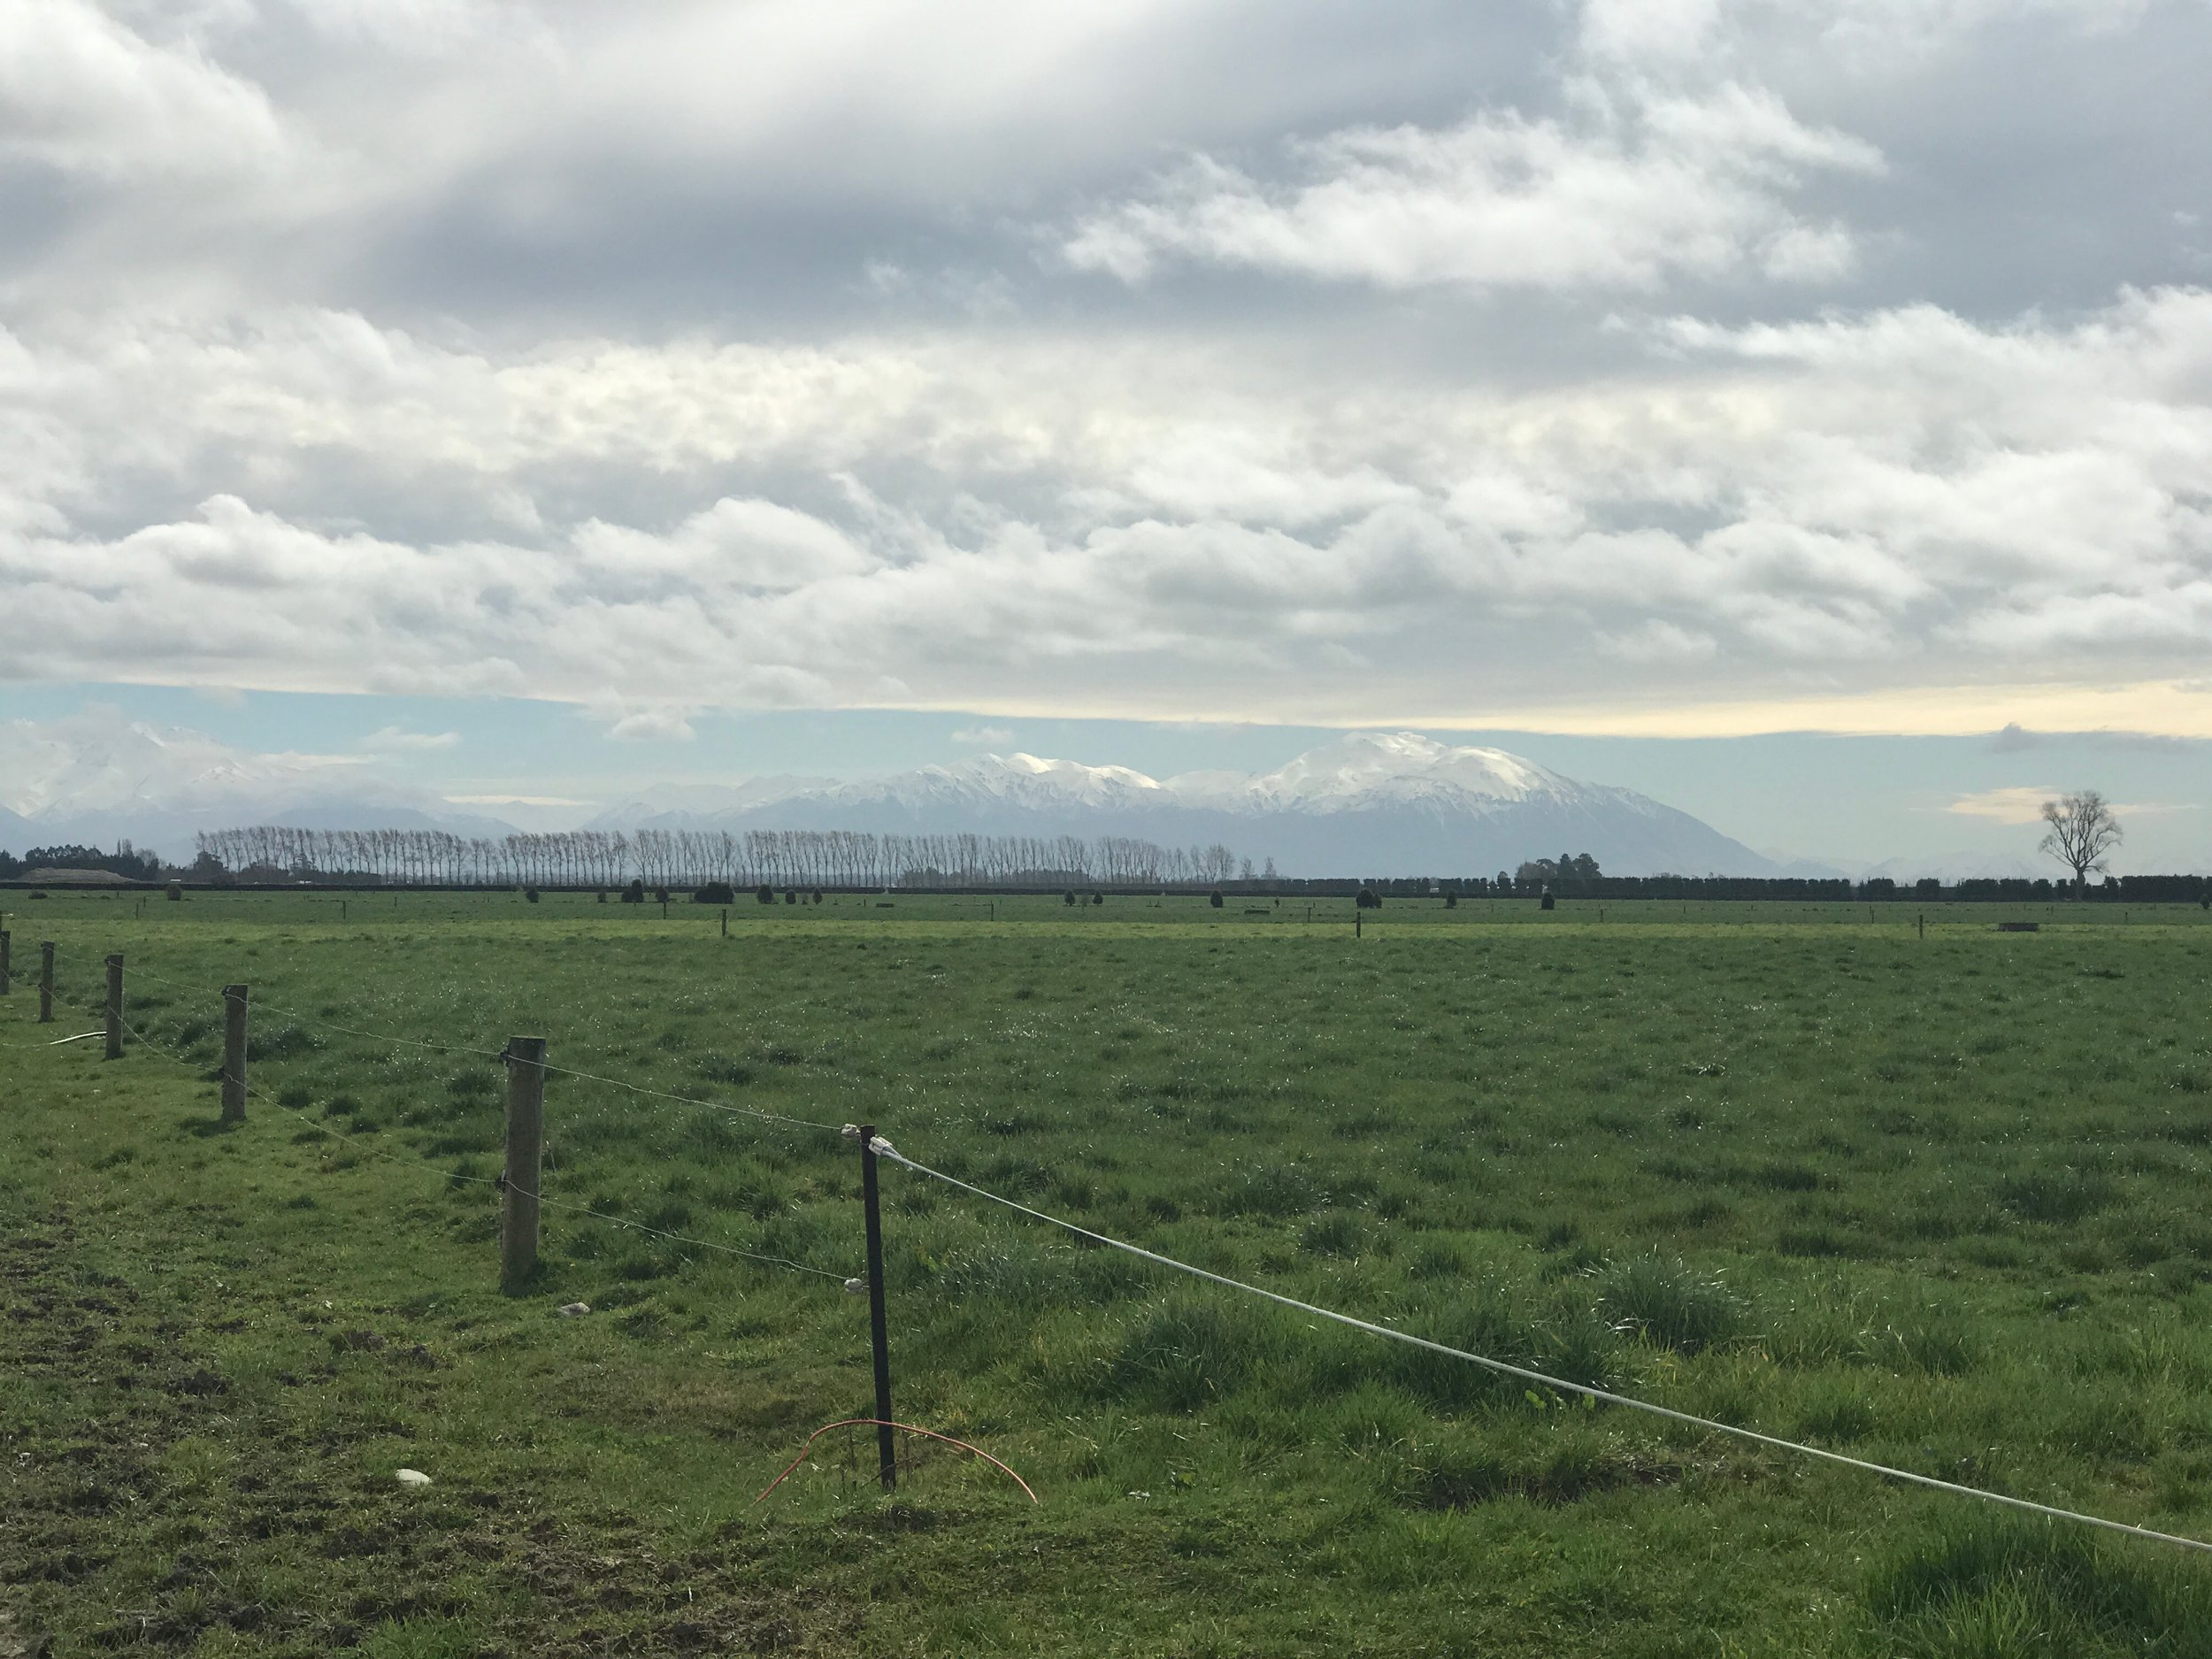 A South Canterbury scene - with the Southern Alps in the background.